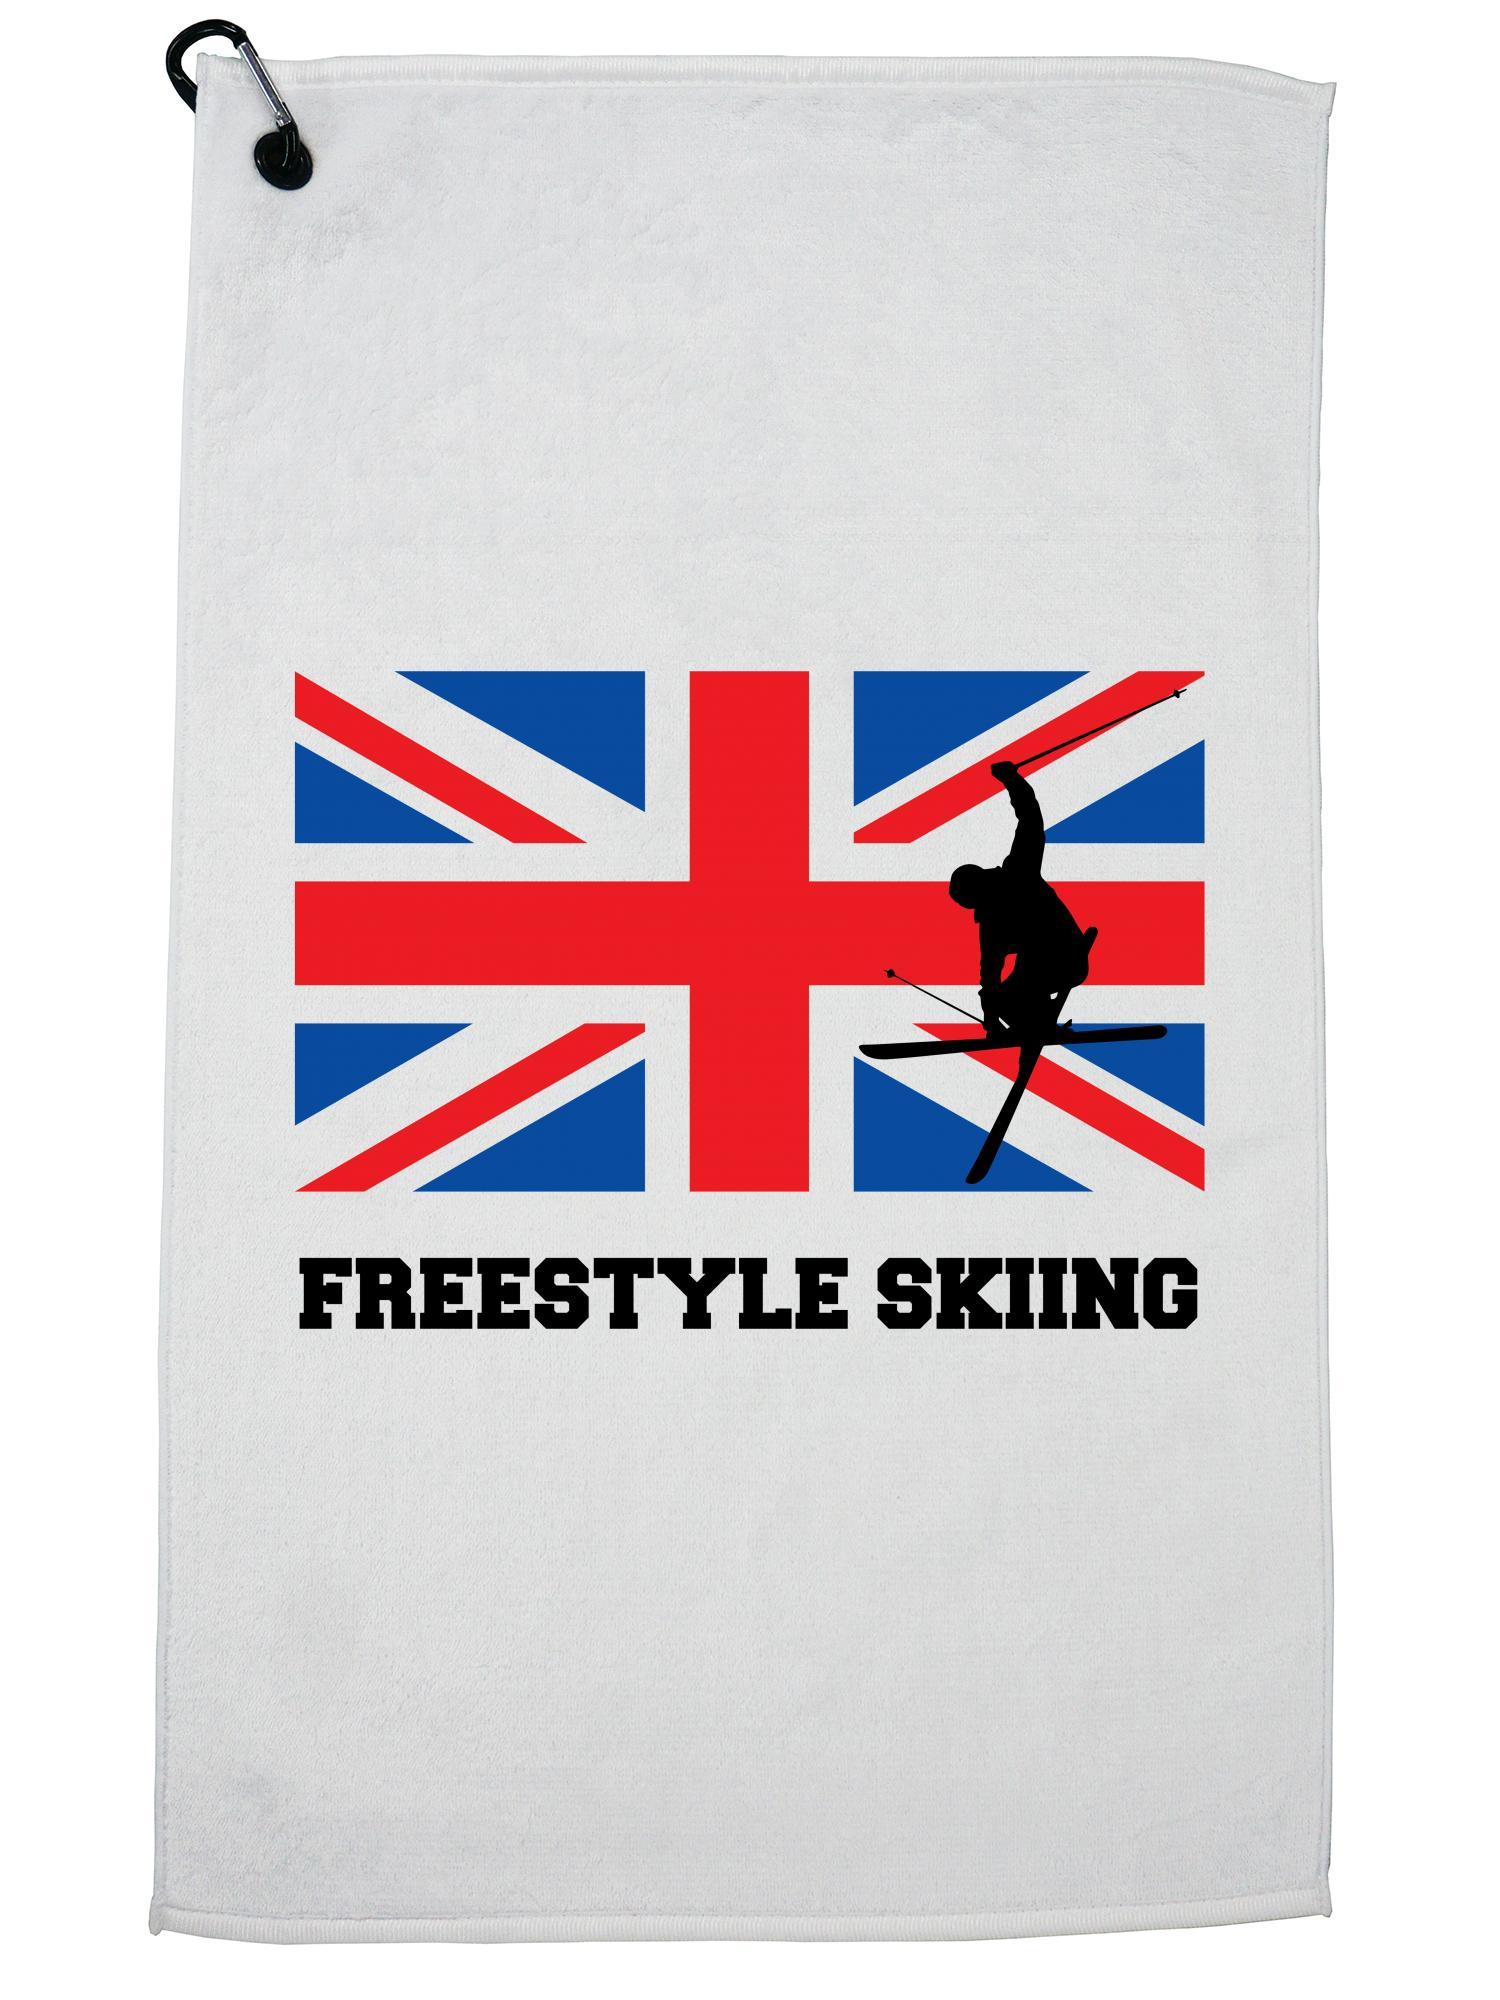 Great Britain Olympic Freestyle Skiing Flag Silhouette Golf Towel with Carabiner Clip by Hollywood Thread